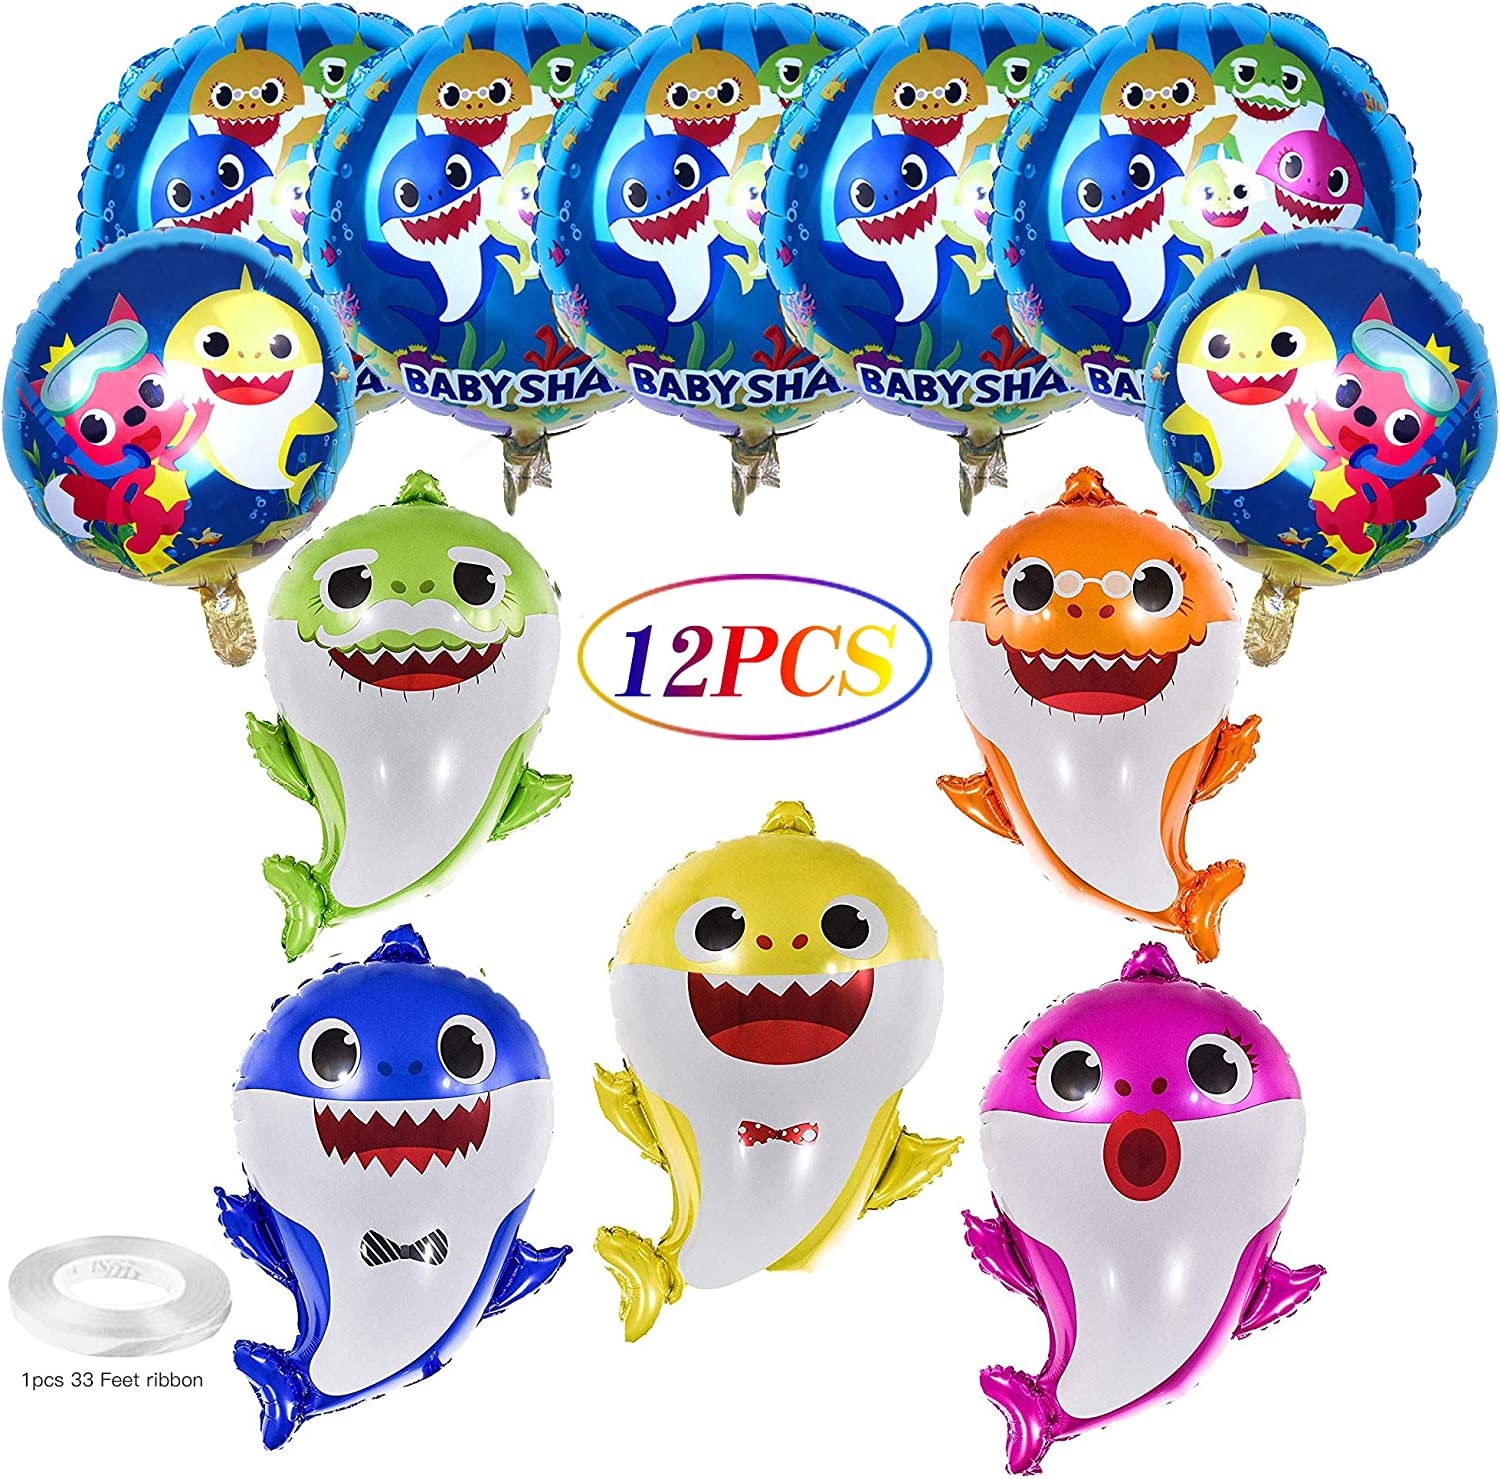 Summerdays 12 Pack babychild Shark Balloons - 26 inch Shark Helium Baloons, 7 Pieces 17 inch Round Balloons Shark Decoration Baloons